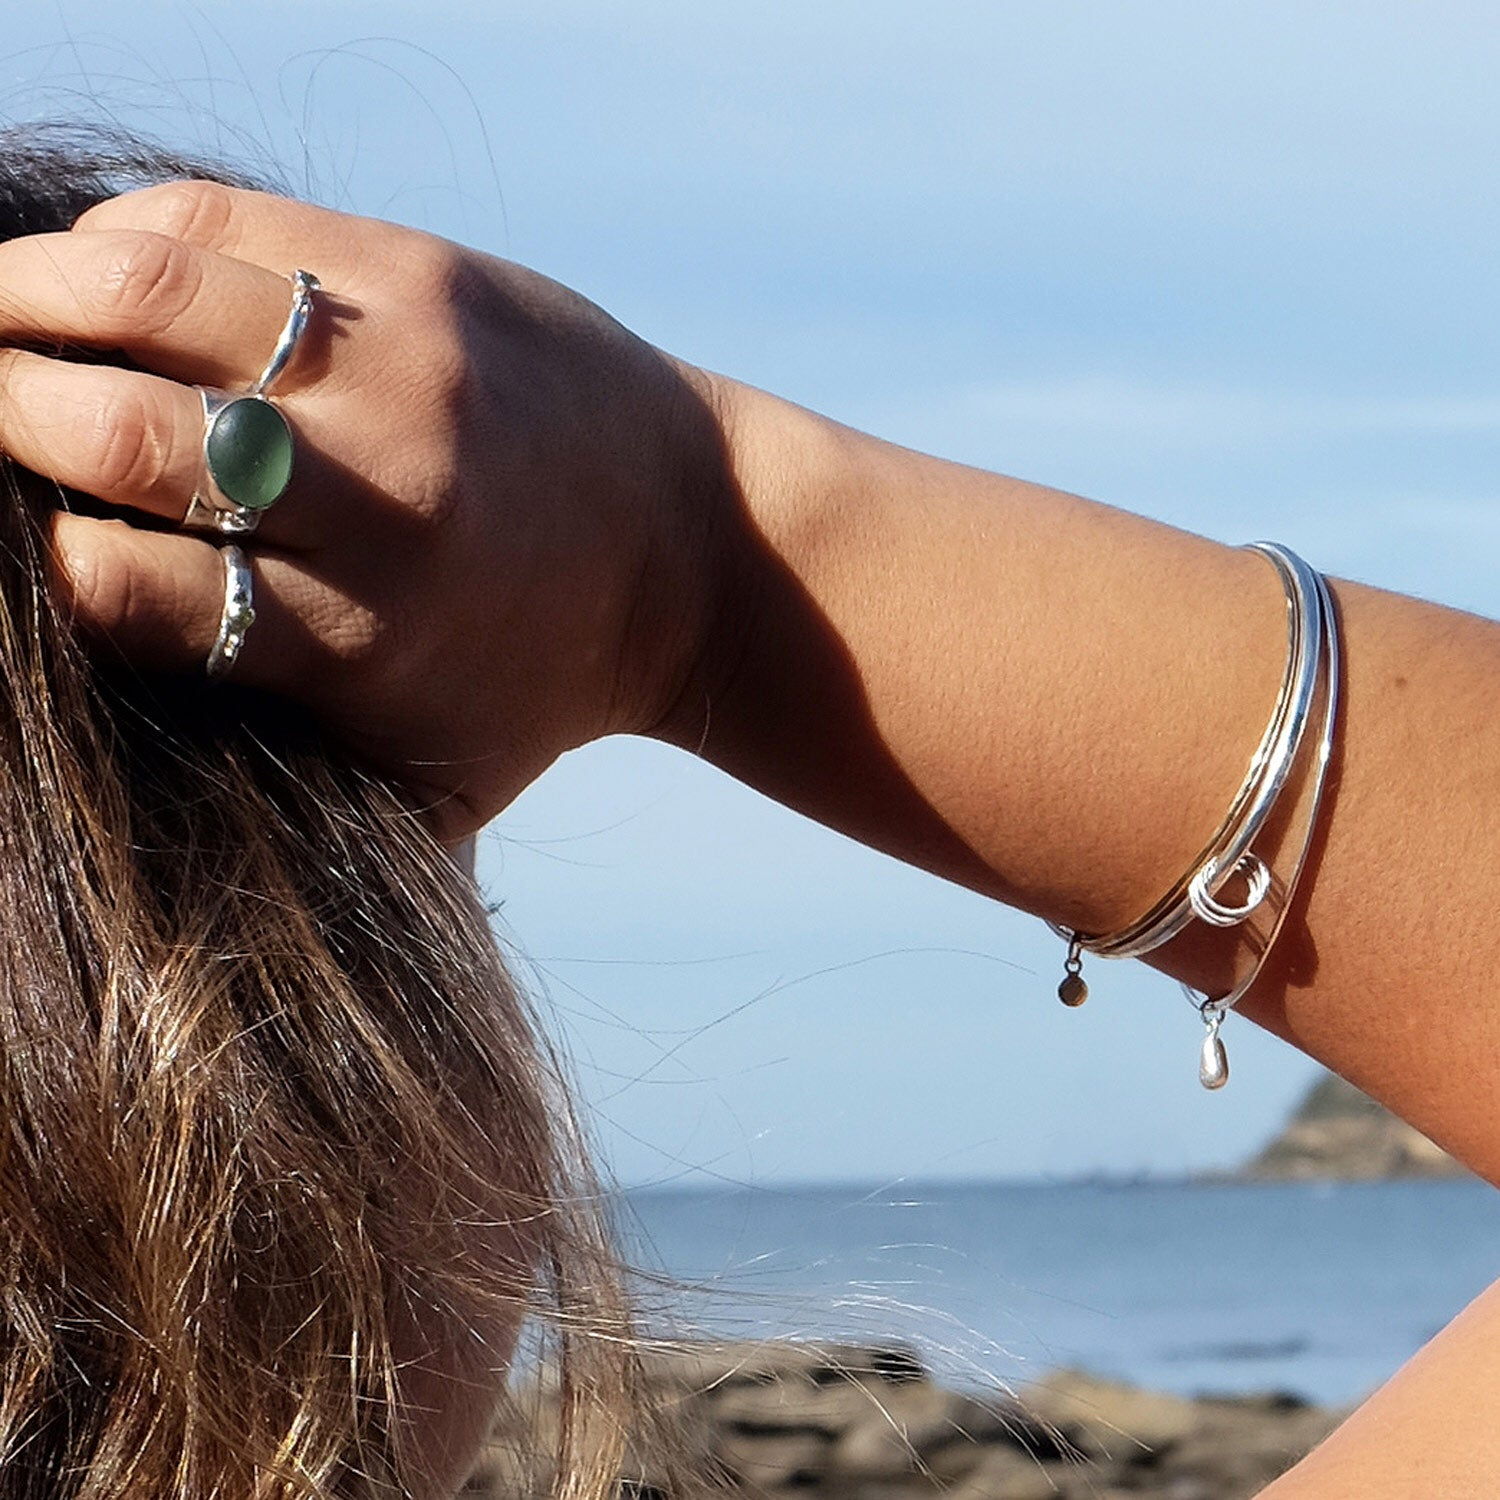 kriket Broadhurst seaglass bangles on model Valeria